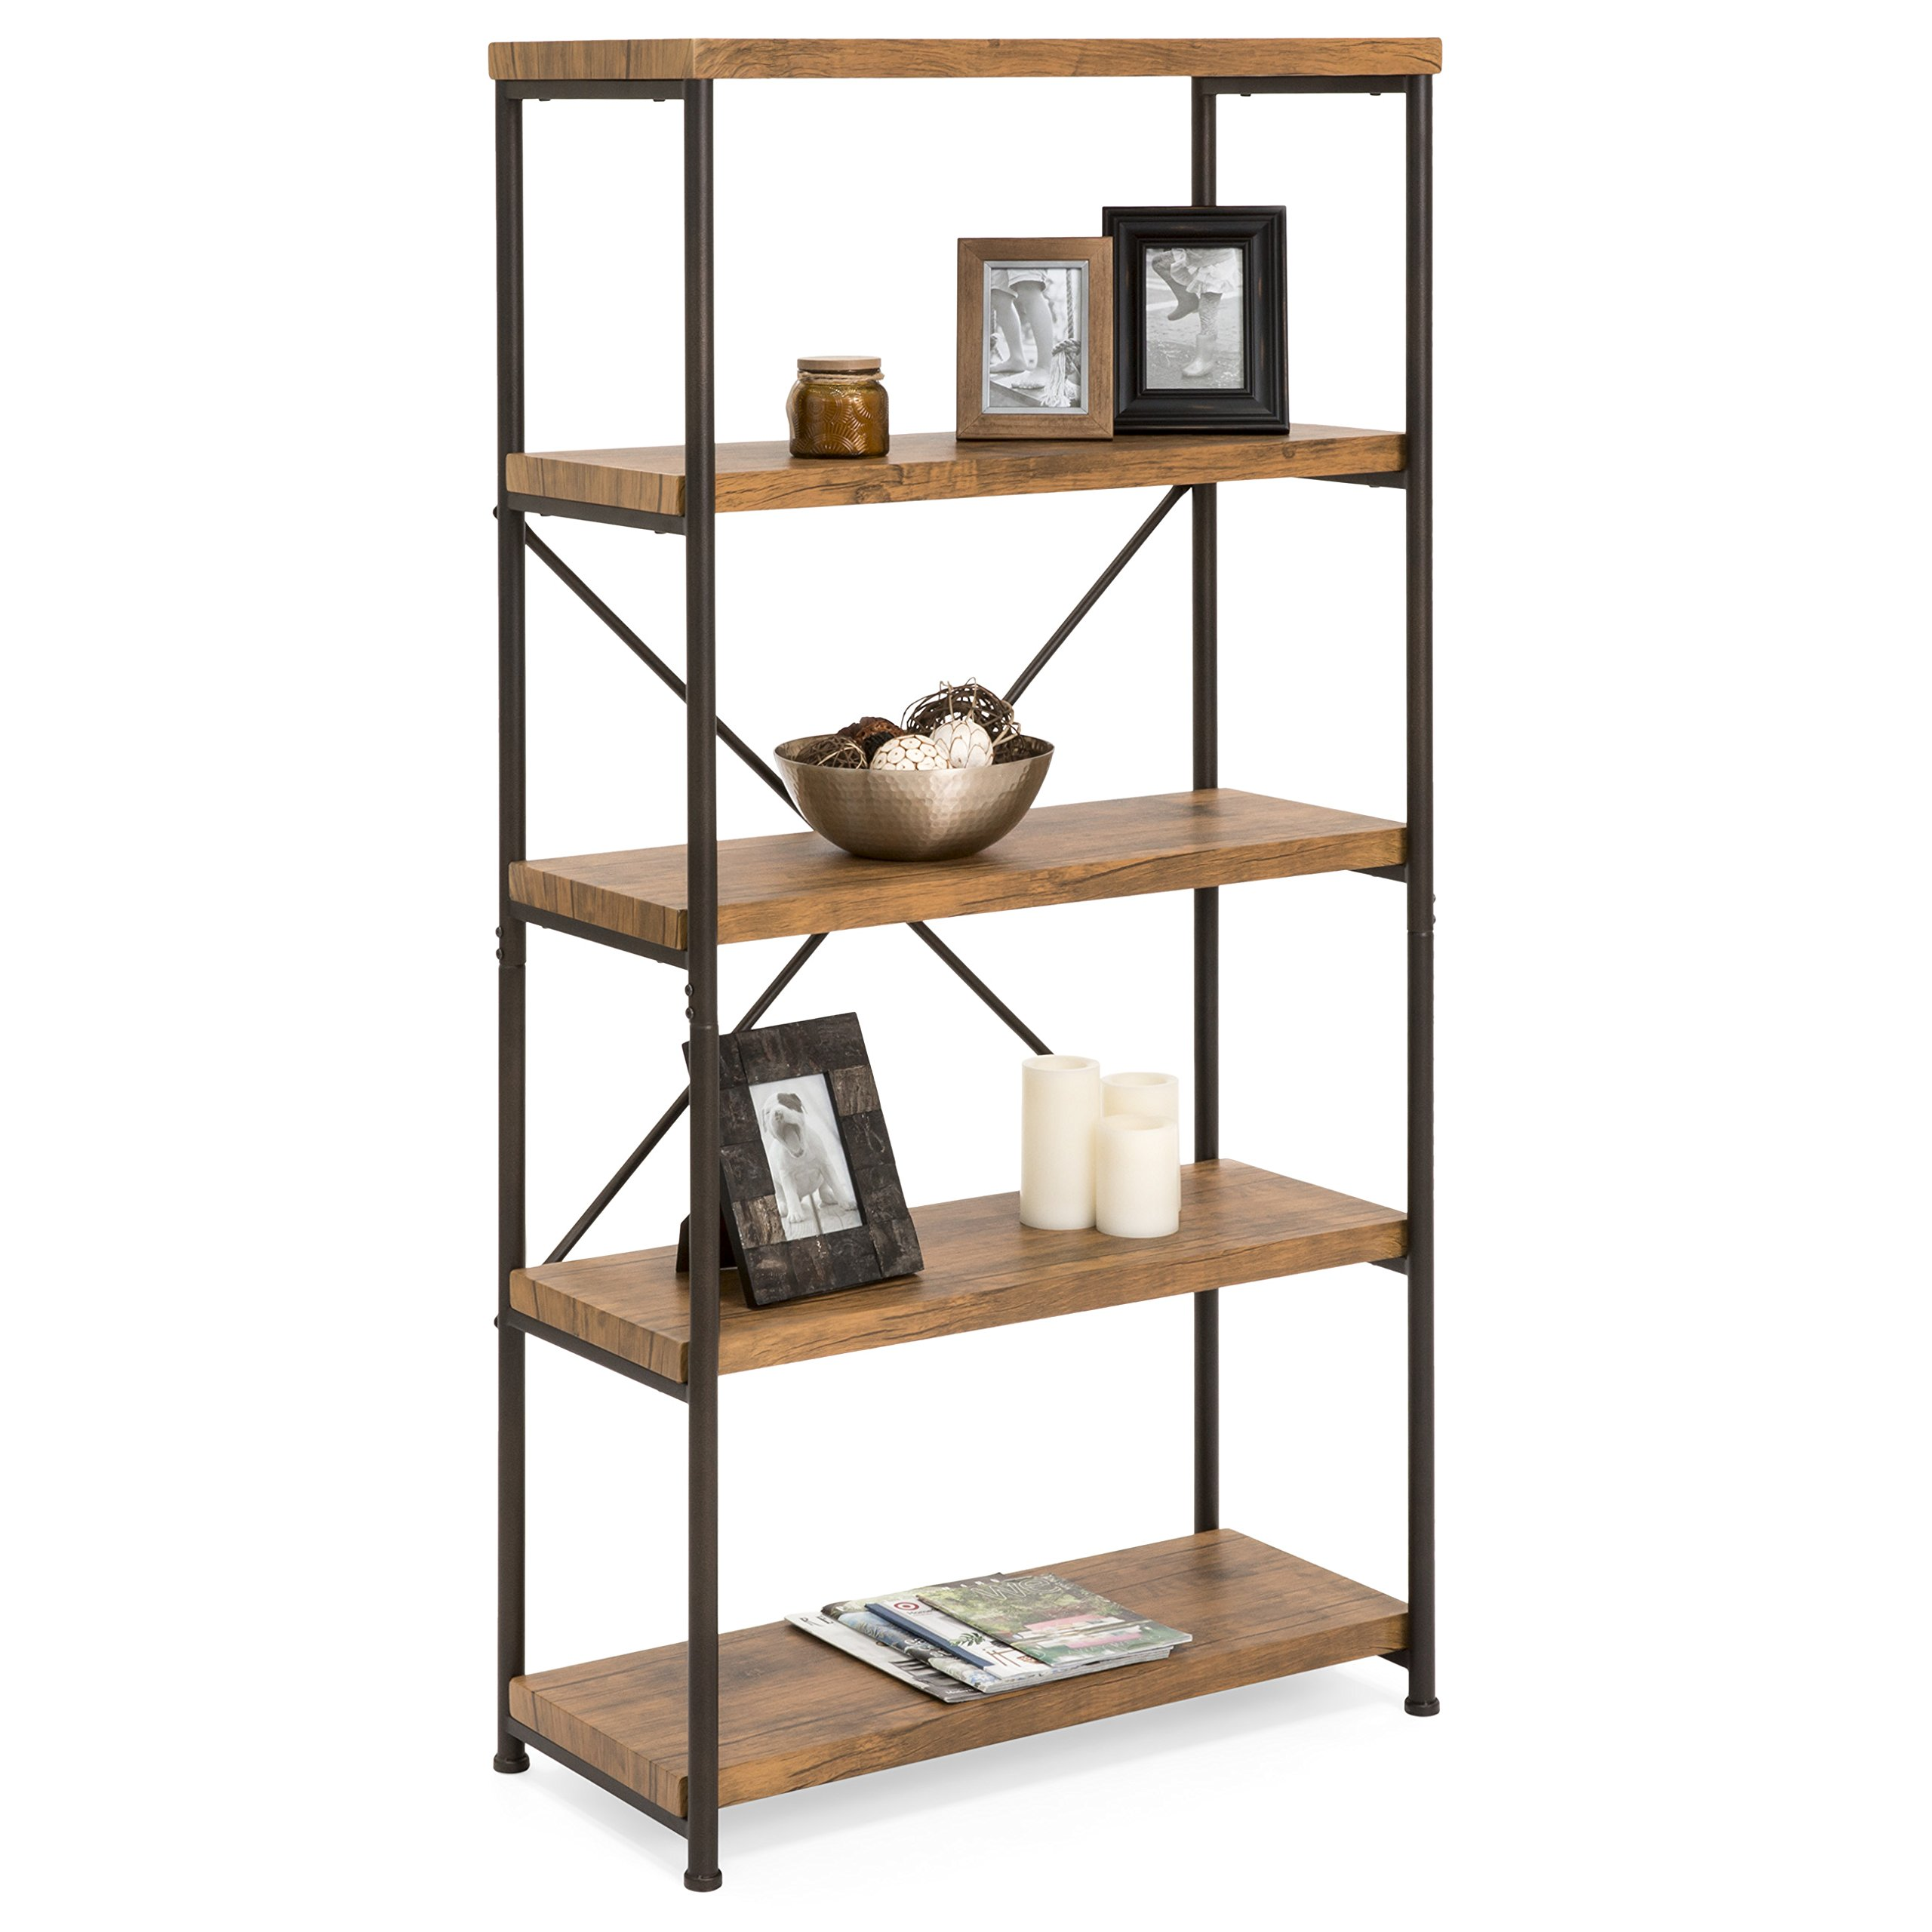 Best Choice Products 4-Tier Rustic Industrial Bookshelf Display Décor Accent for Living Room, Bedroom, Office w/Metal Frame, Wood Shelves - Brown